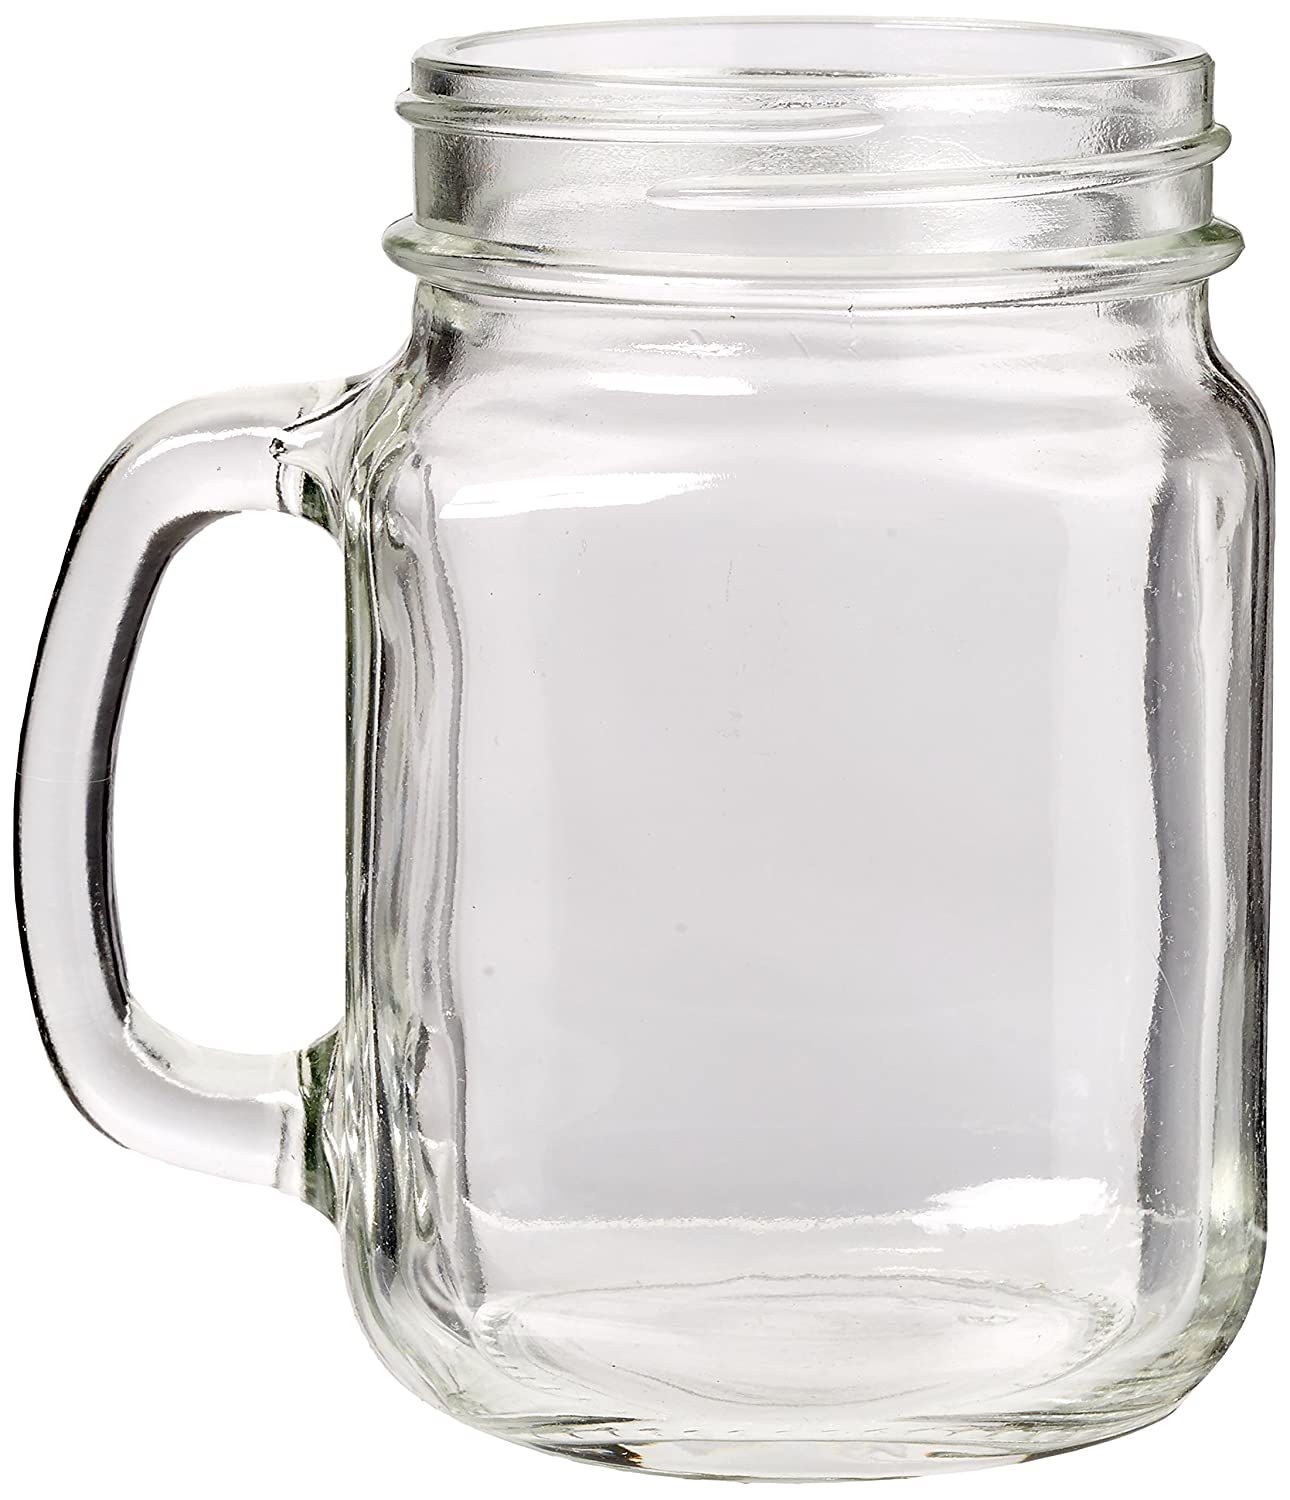 60e3023179b 12x Olympia Handled Jam Jar Glasses 16oz 450ml Cocktail Beer Drinking Mugs   Amazon.co.uk  Business